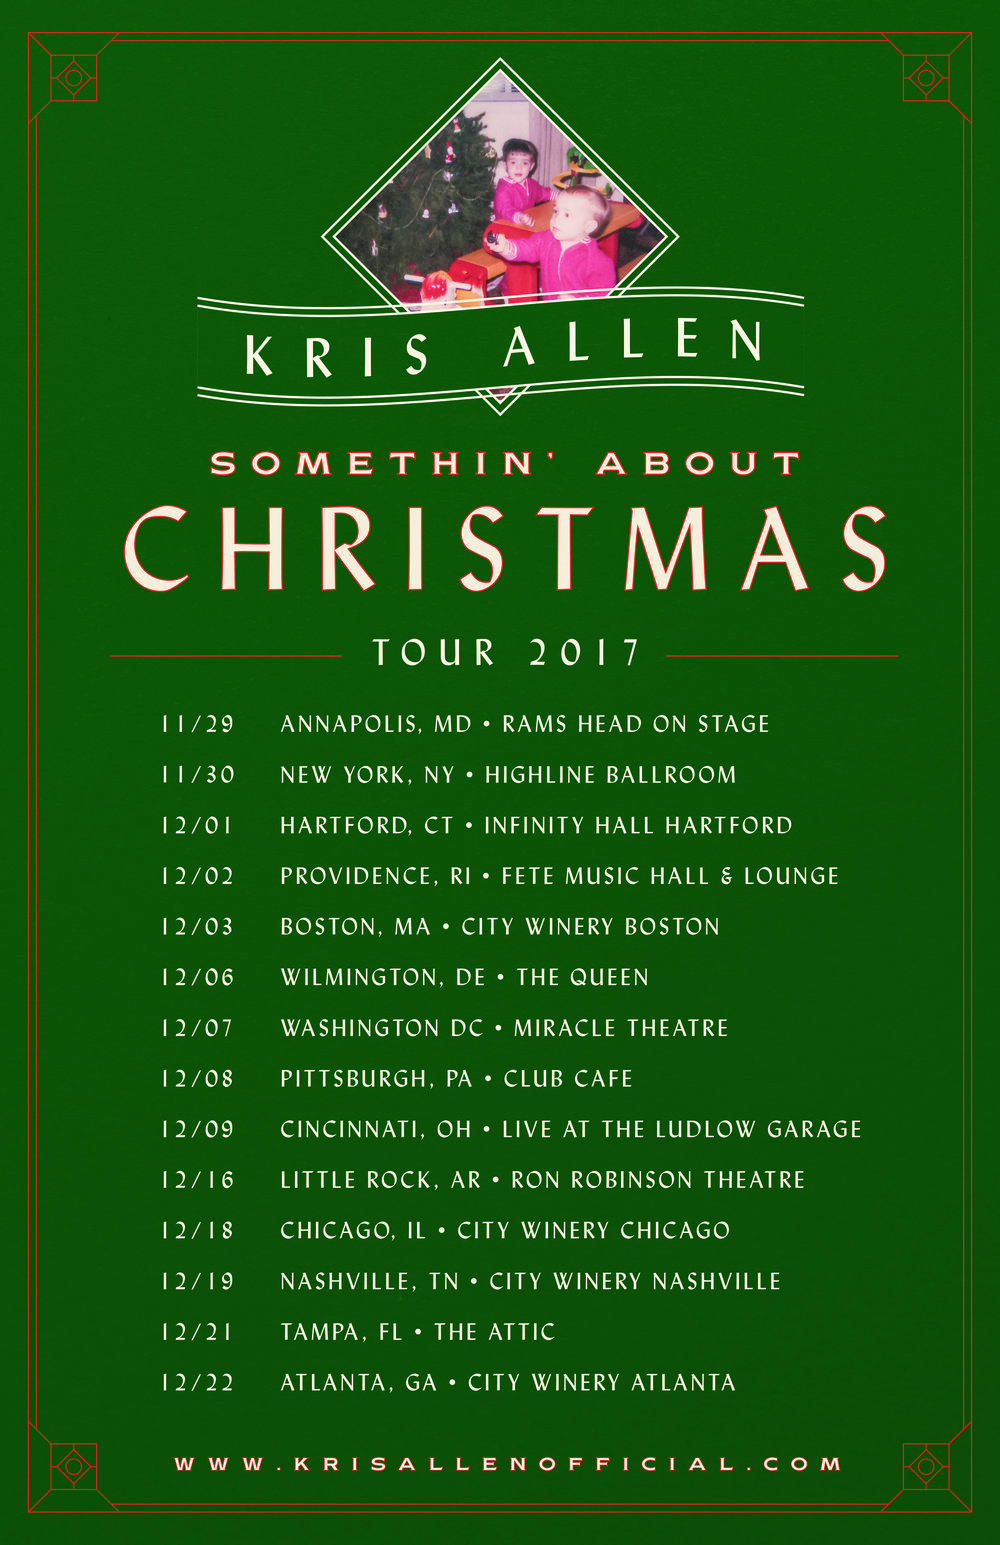 GoodTimeInc_KrisAllen_SomethinAboutChristmas_2017TourPoster_01 (1).jpg